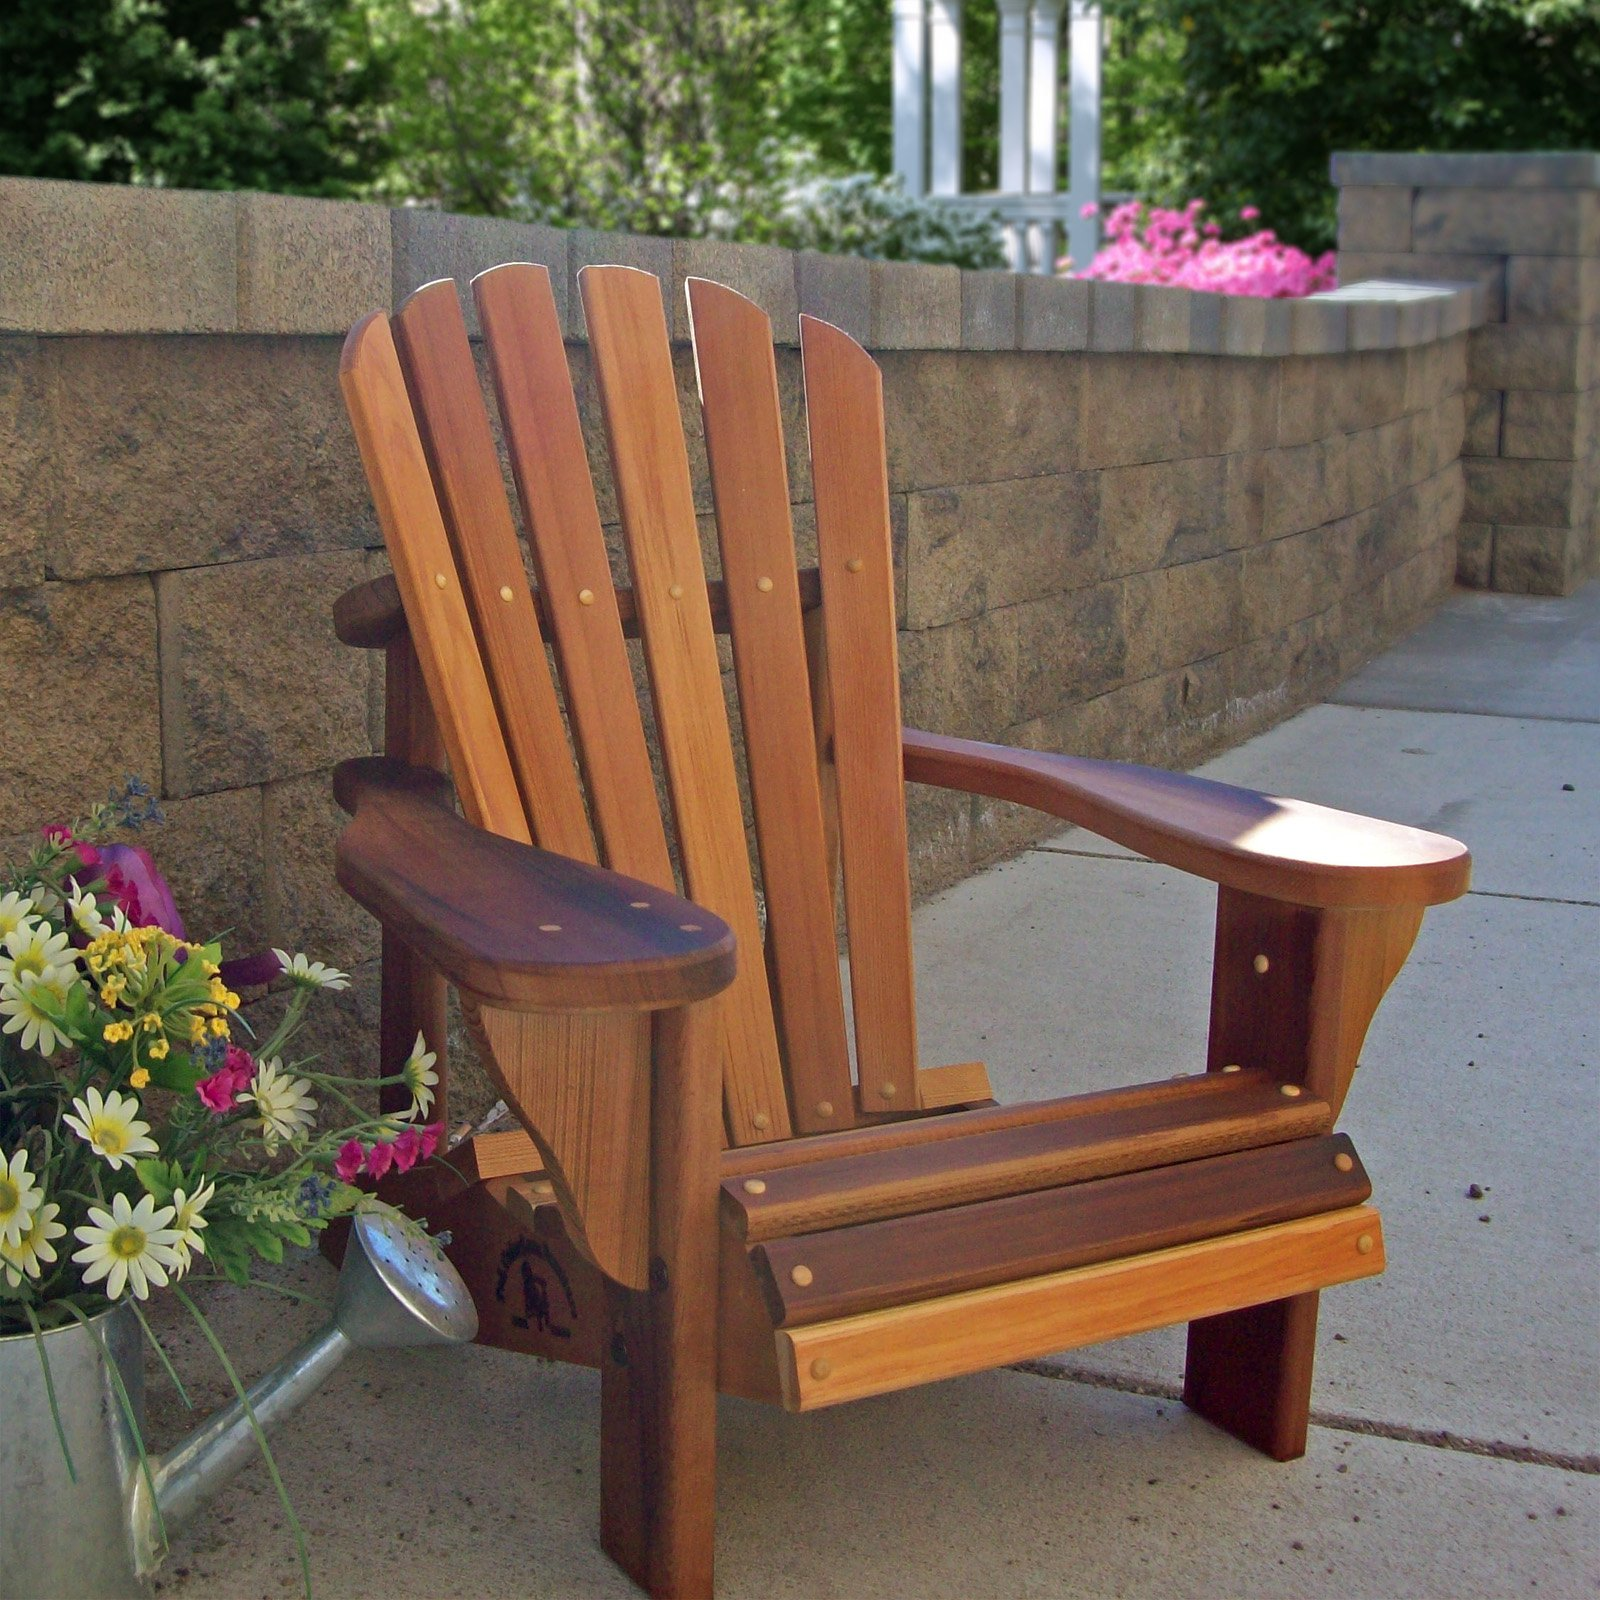 Wood Country Childrens Cedar Adirondack Chair   Walmart.com